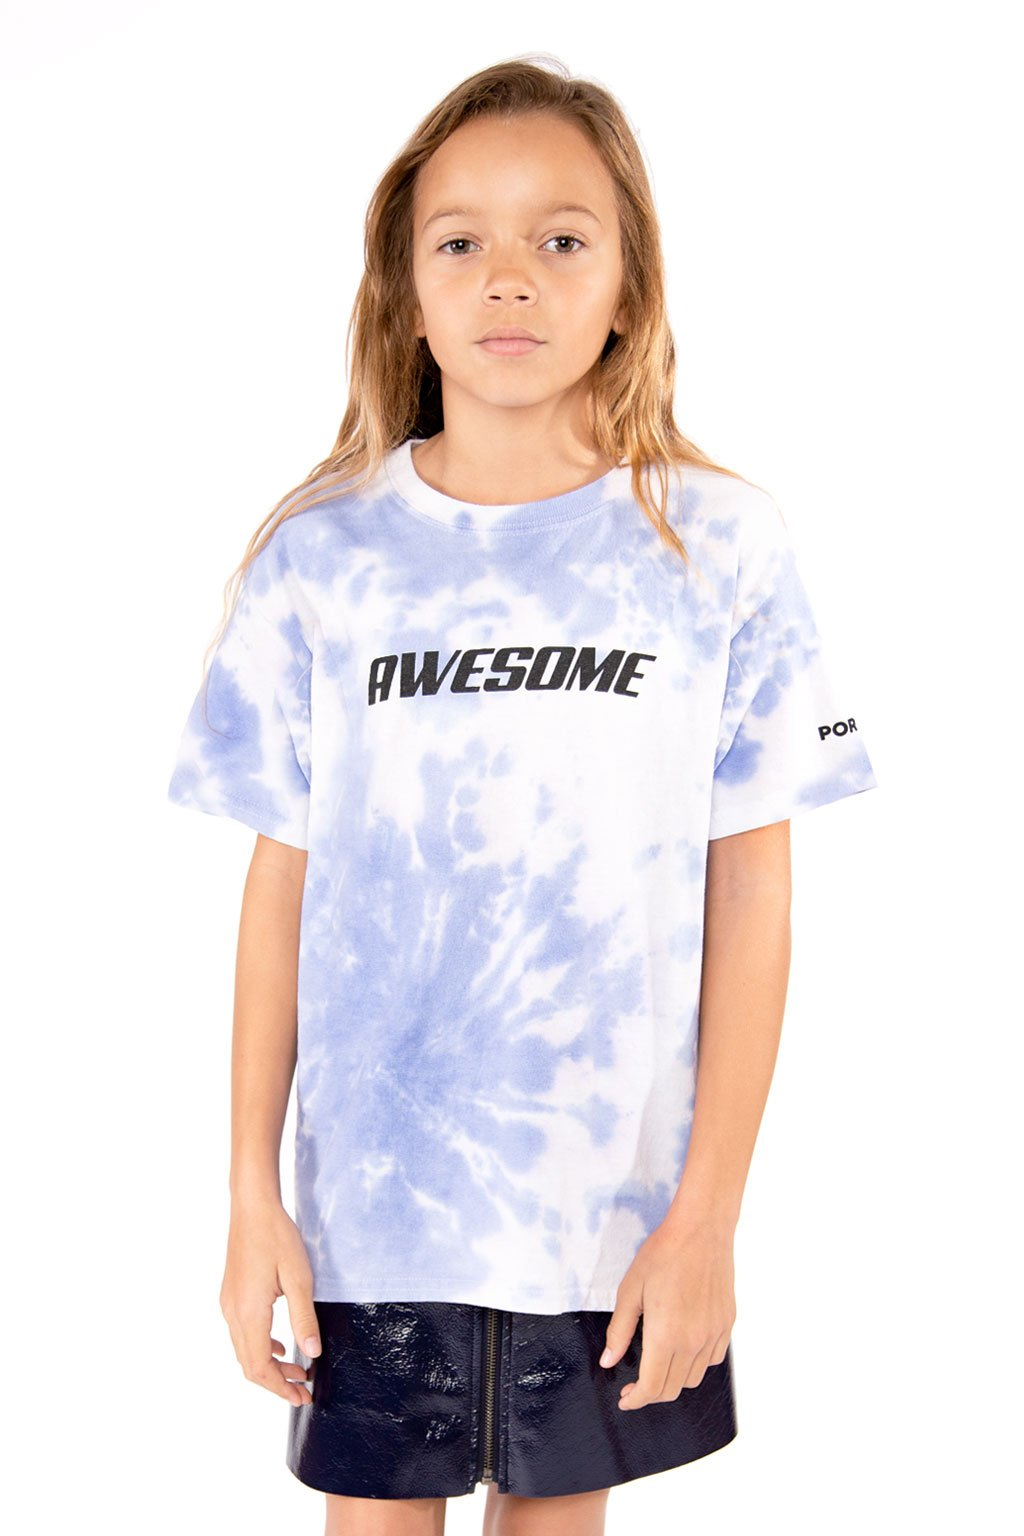 Blue Tie-Dye Awesome T-Shirt - Port 213.com